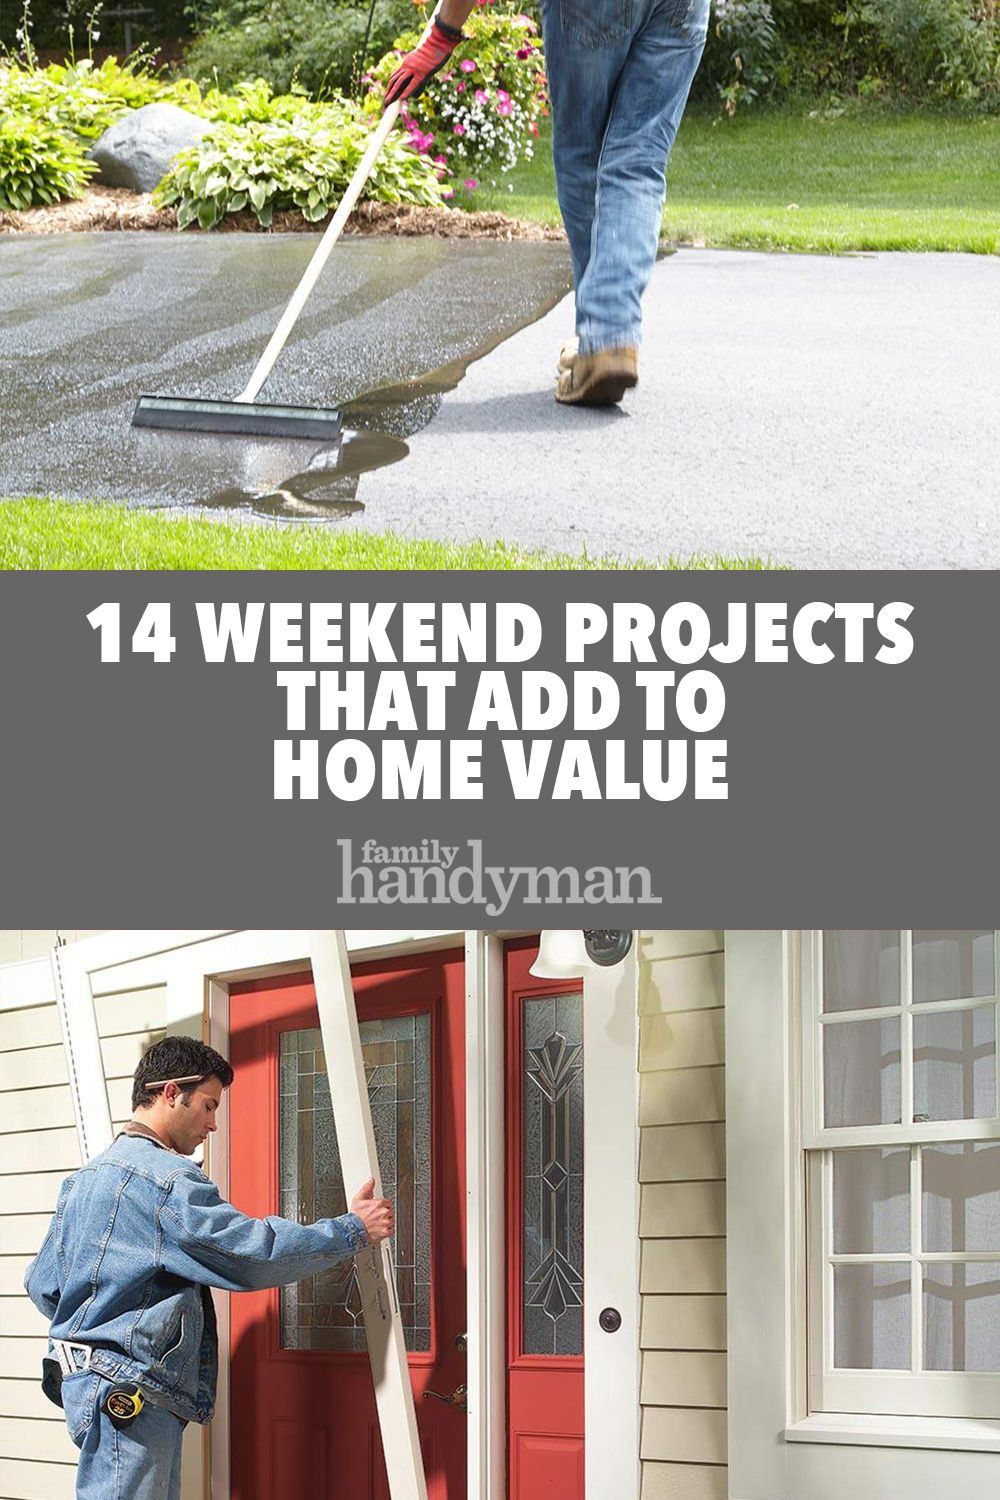 14 Weekend Projects that Add to Home Value